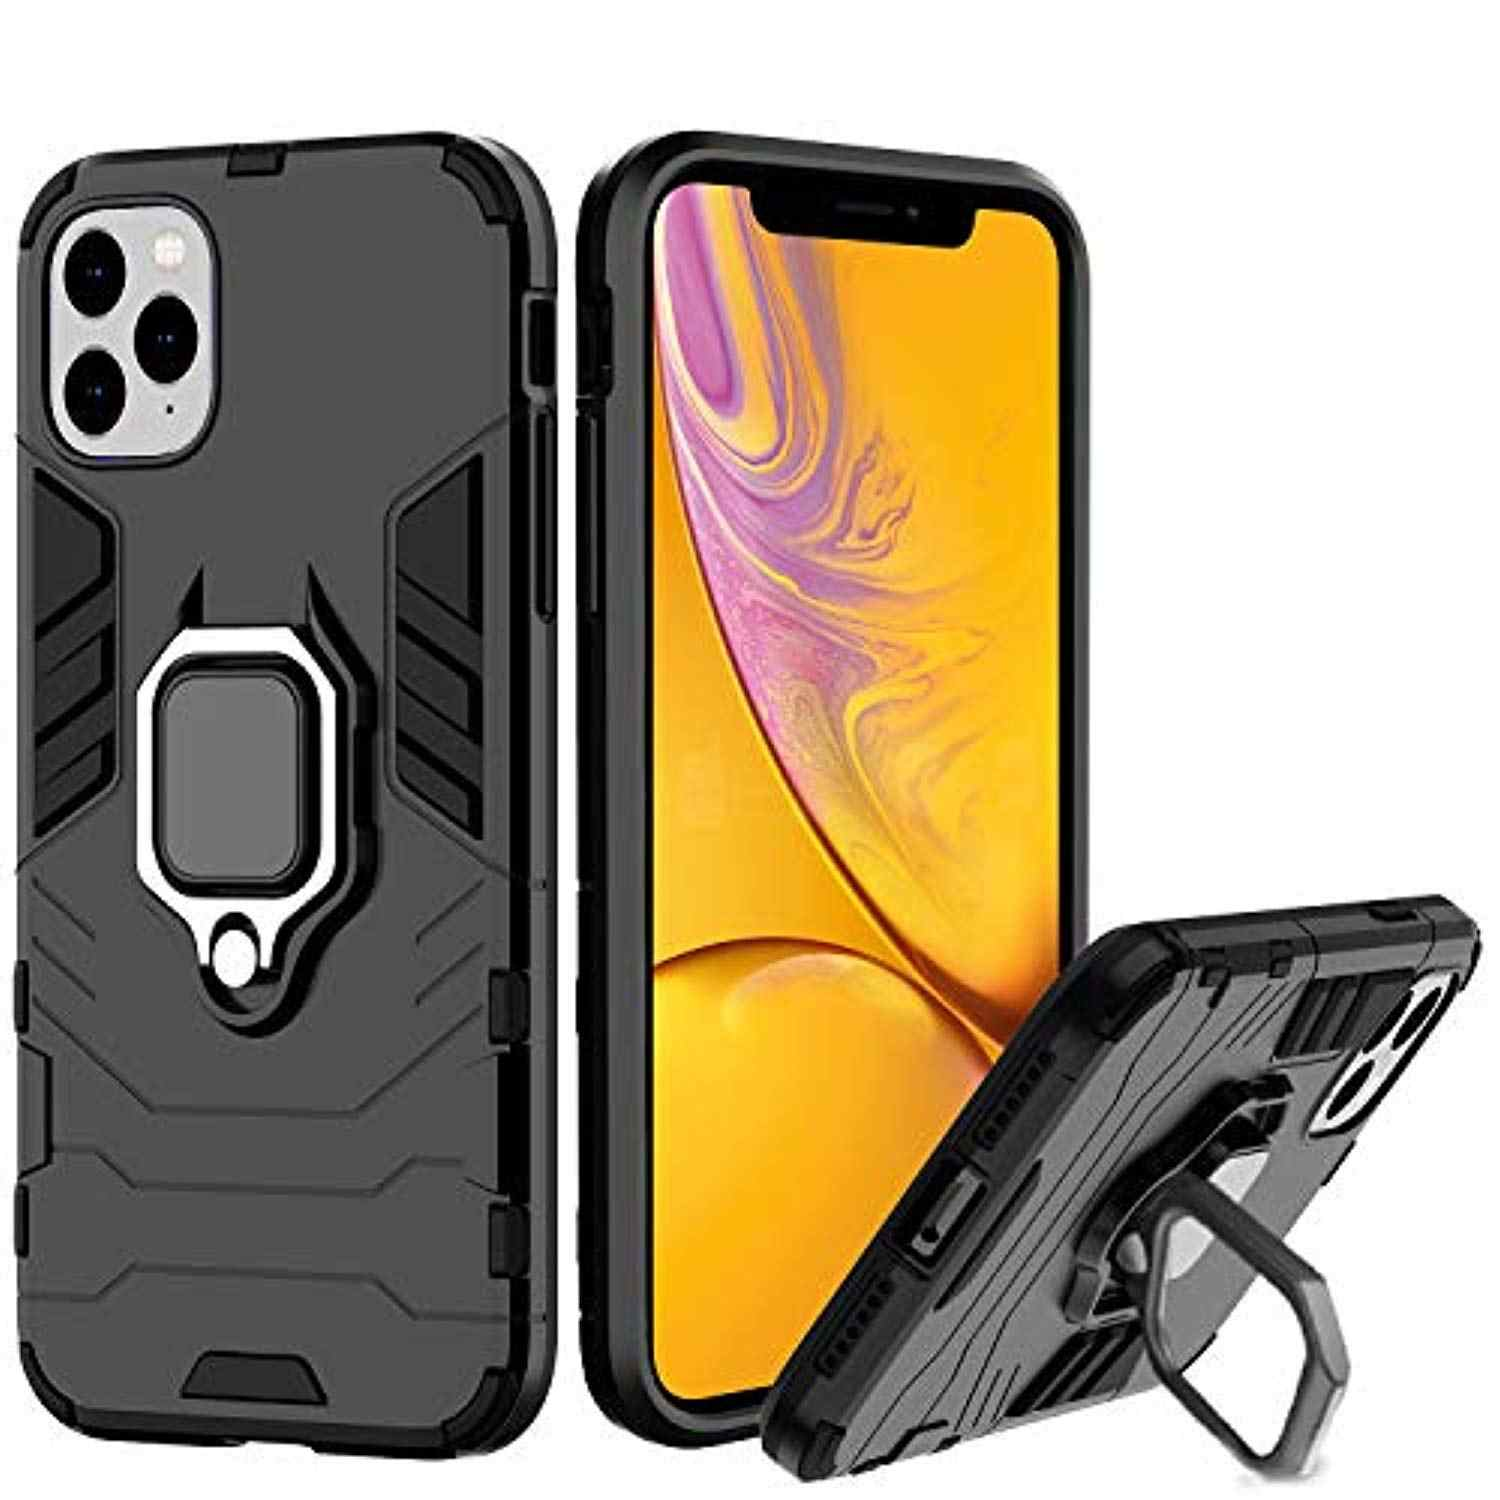 Armor Case for iPhone 11 Pro MAX XR X 6 6s 7 8 Plus Cover 360 Degree Rotating Bracket Magnetic Metal Plate TPU + PC Phone Cases